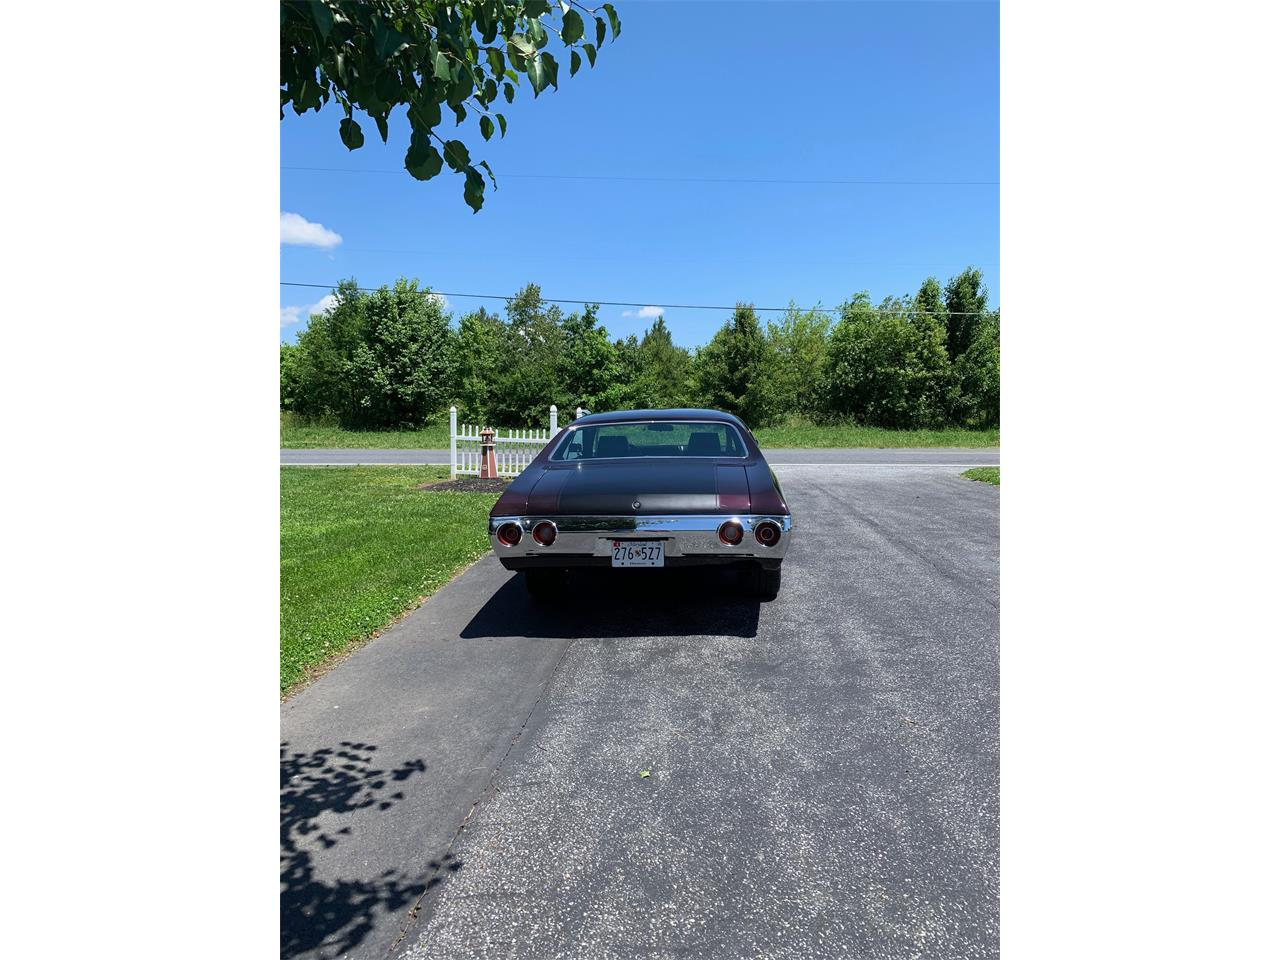 Large Picture of Classic '72 Chevrolet Chevelle Malibu located in Ridgely Maryland - $27,500.00 Offered by a Private Seller - QK1N